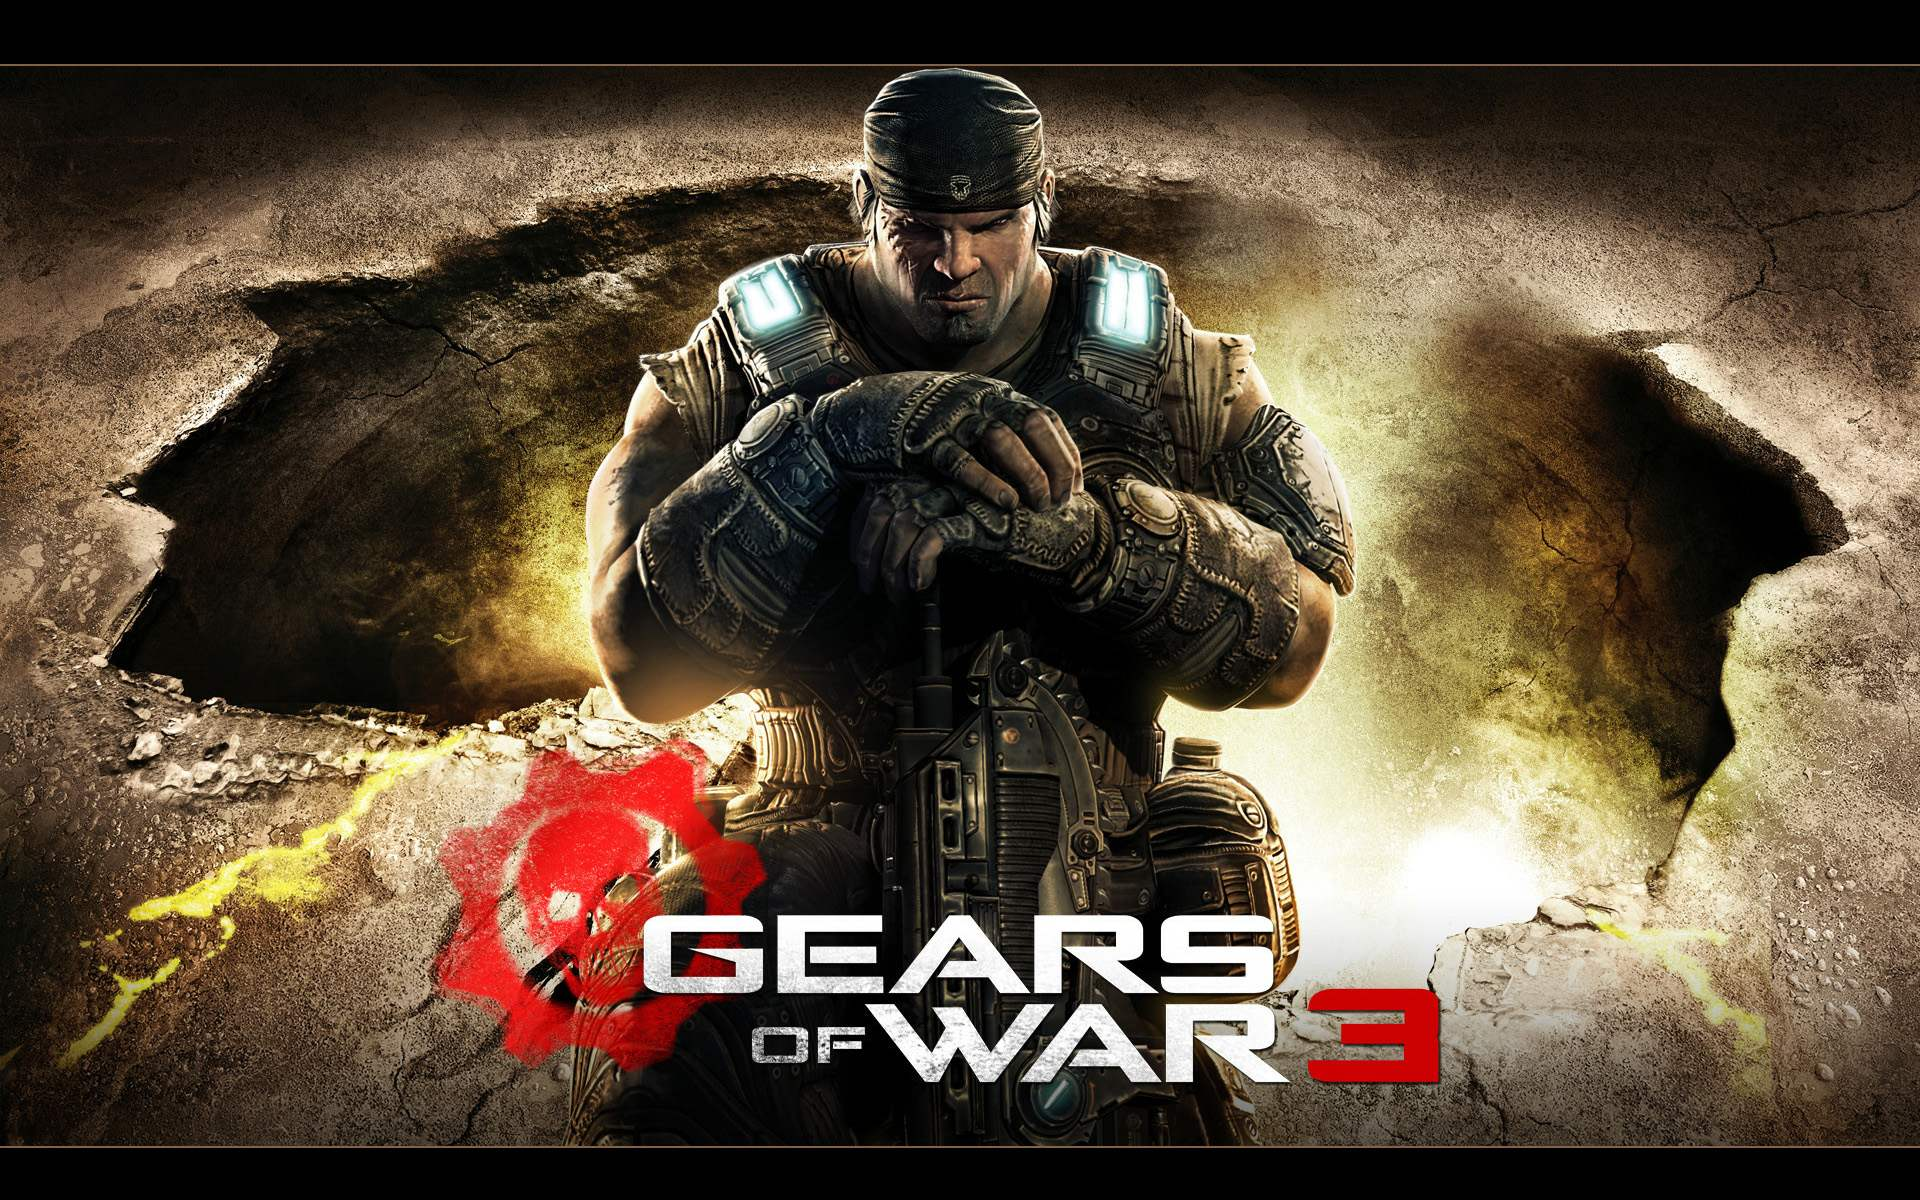 Gears of War 3 PS4 game for iPad wallpapers